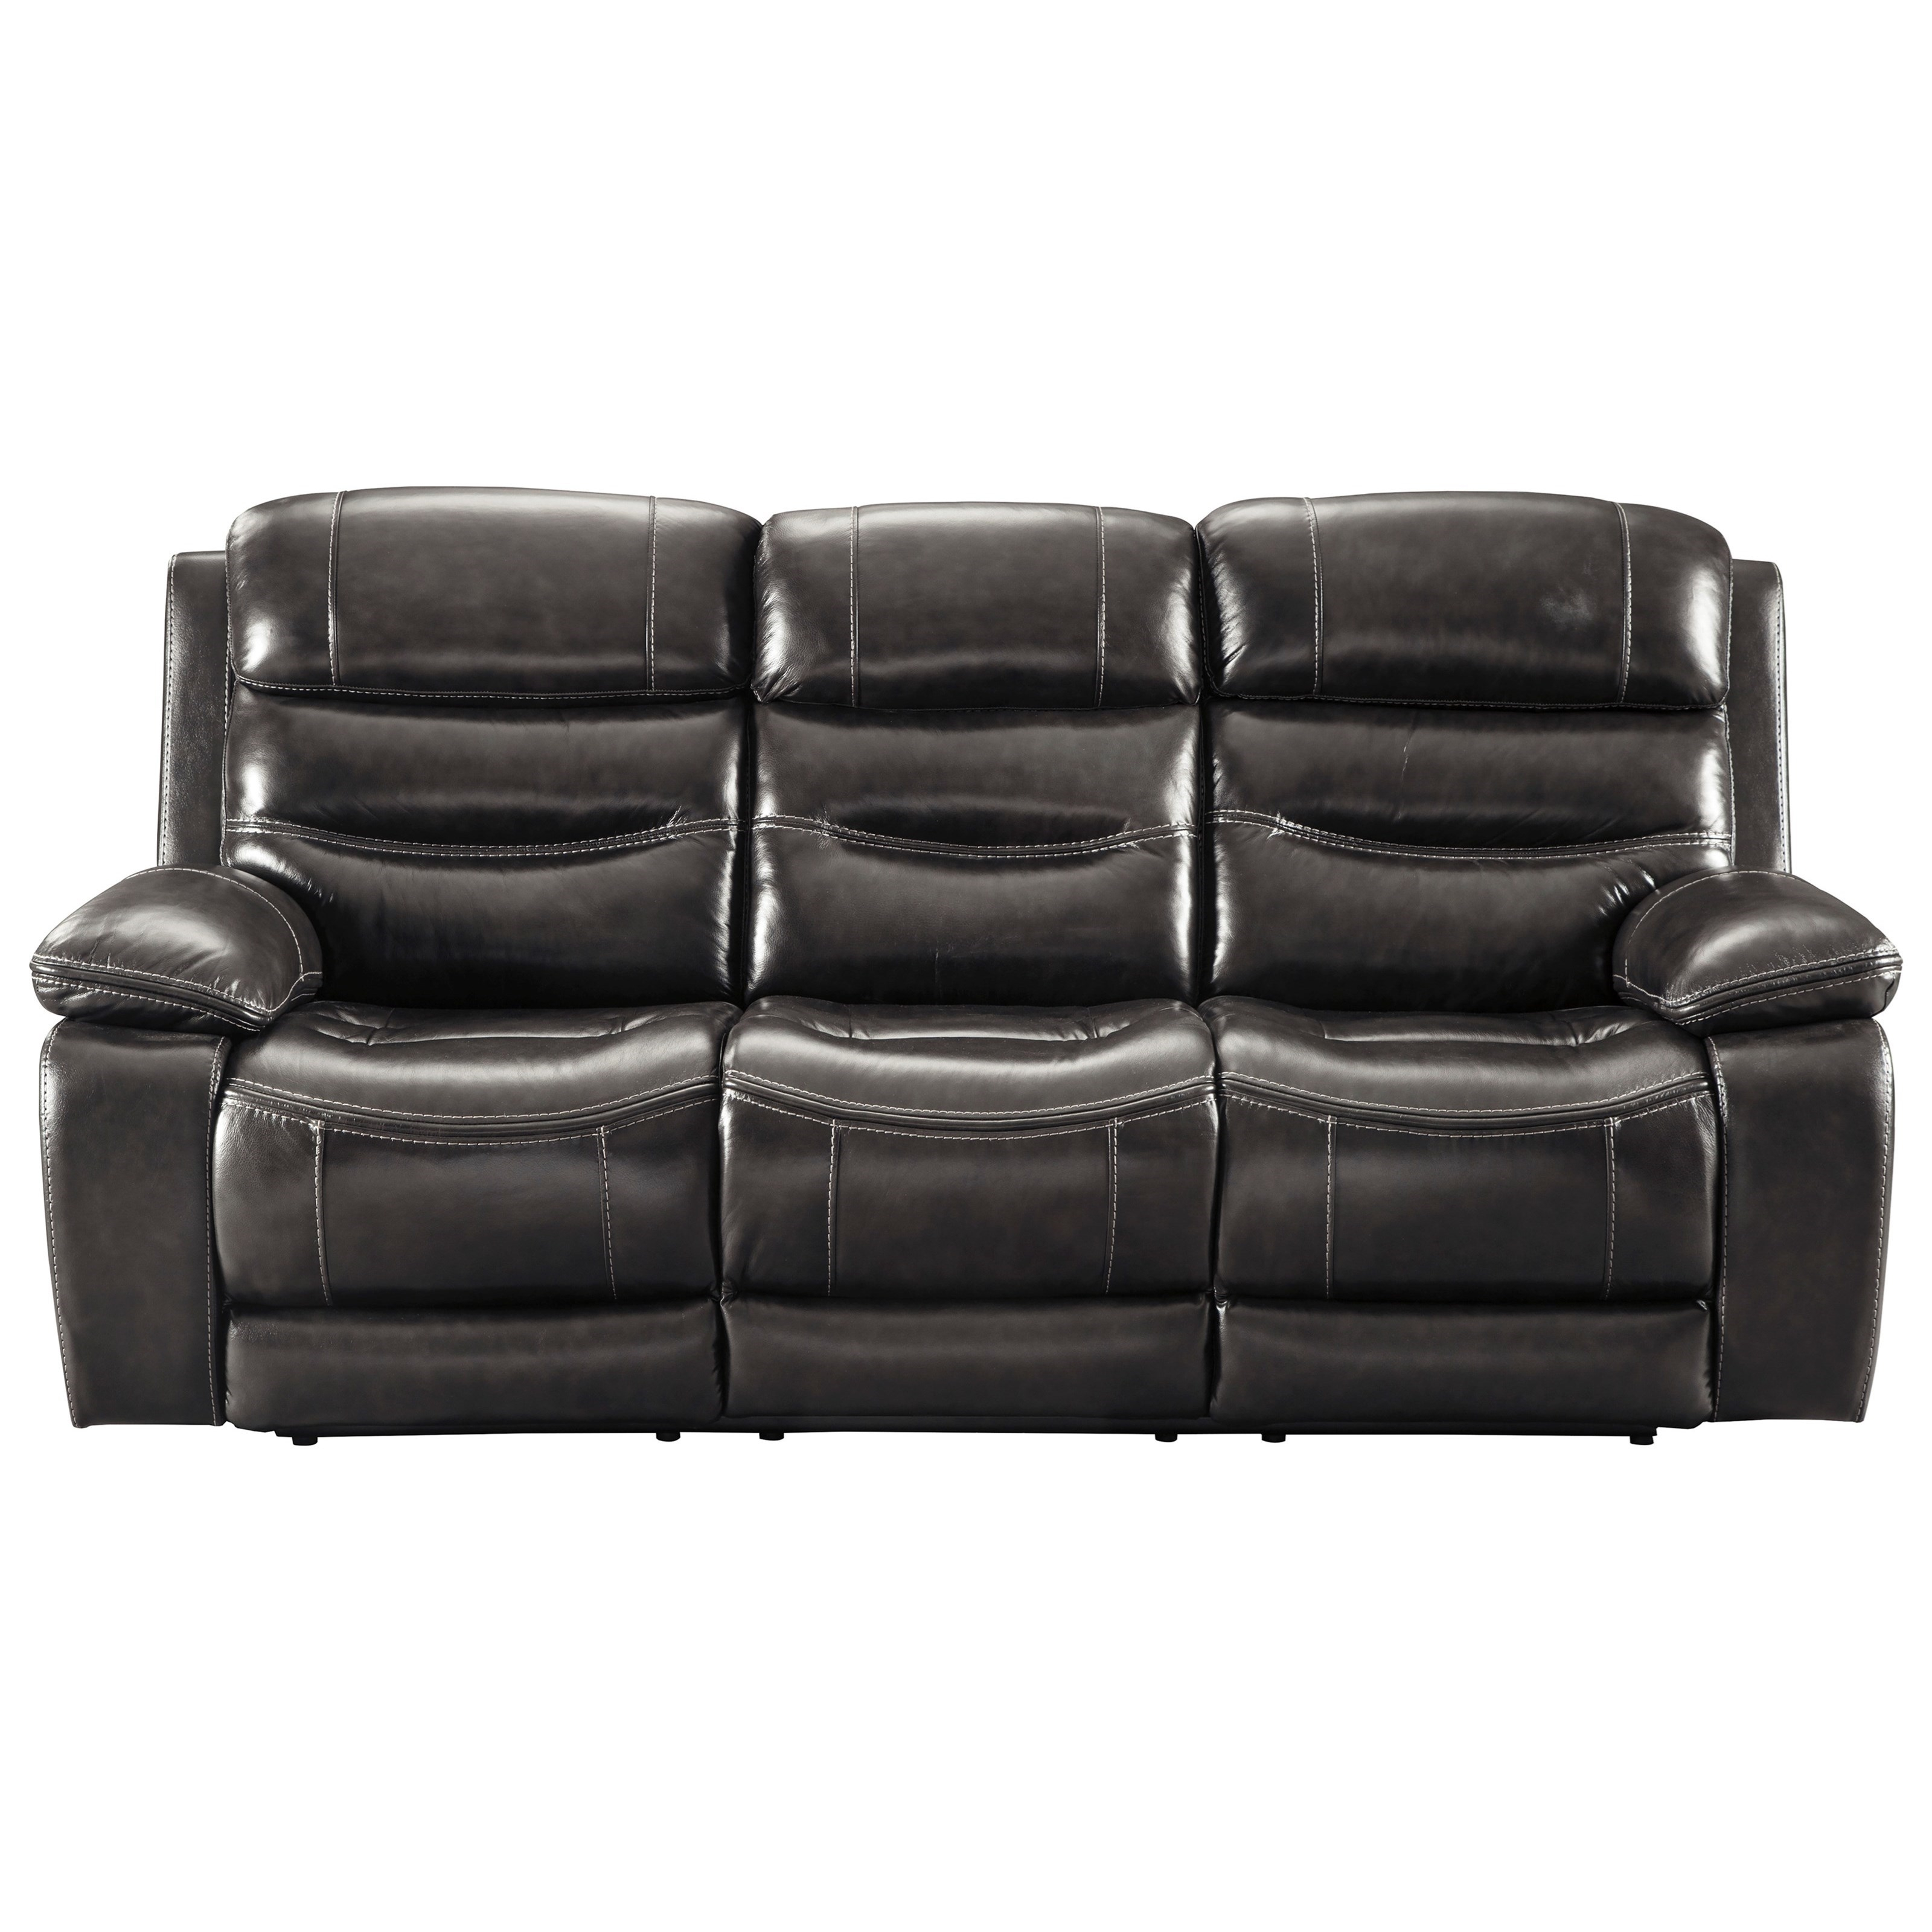 Benchcraftashley Pillement Leather Match Power Reclining Sofa W With Regard To Denali Charcoal Grey 6 Piece Reclining Sectionals With 2 Power Headrests (Image 5 of 25)